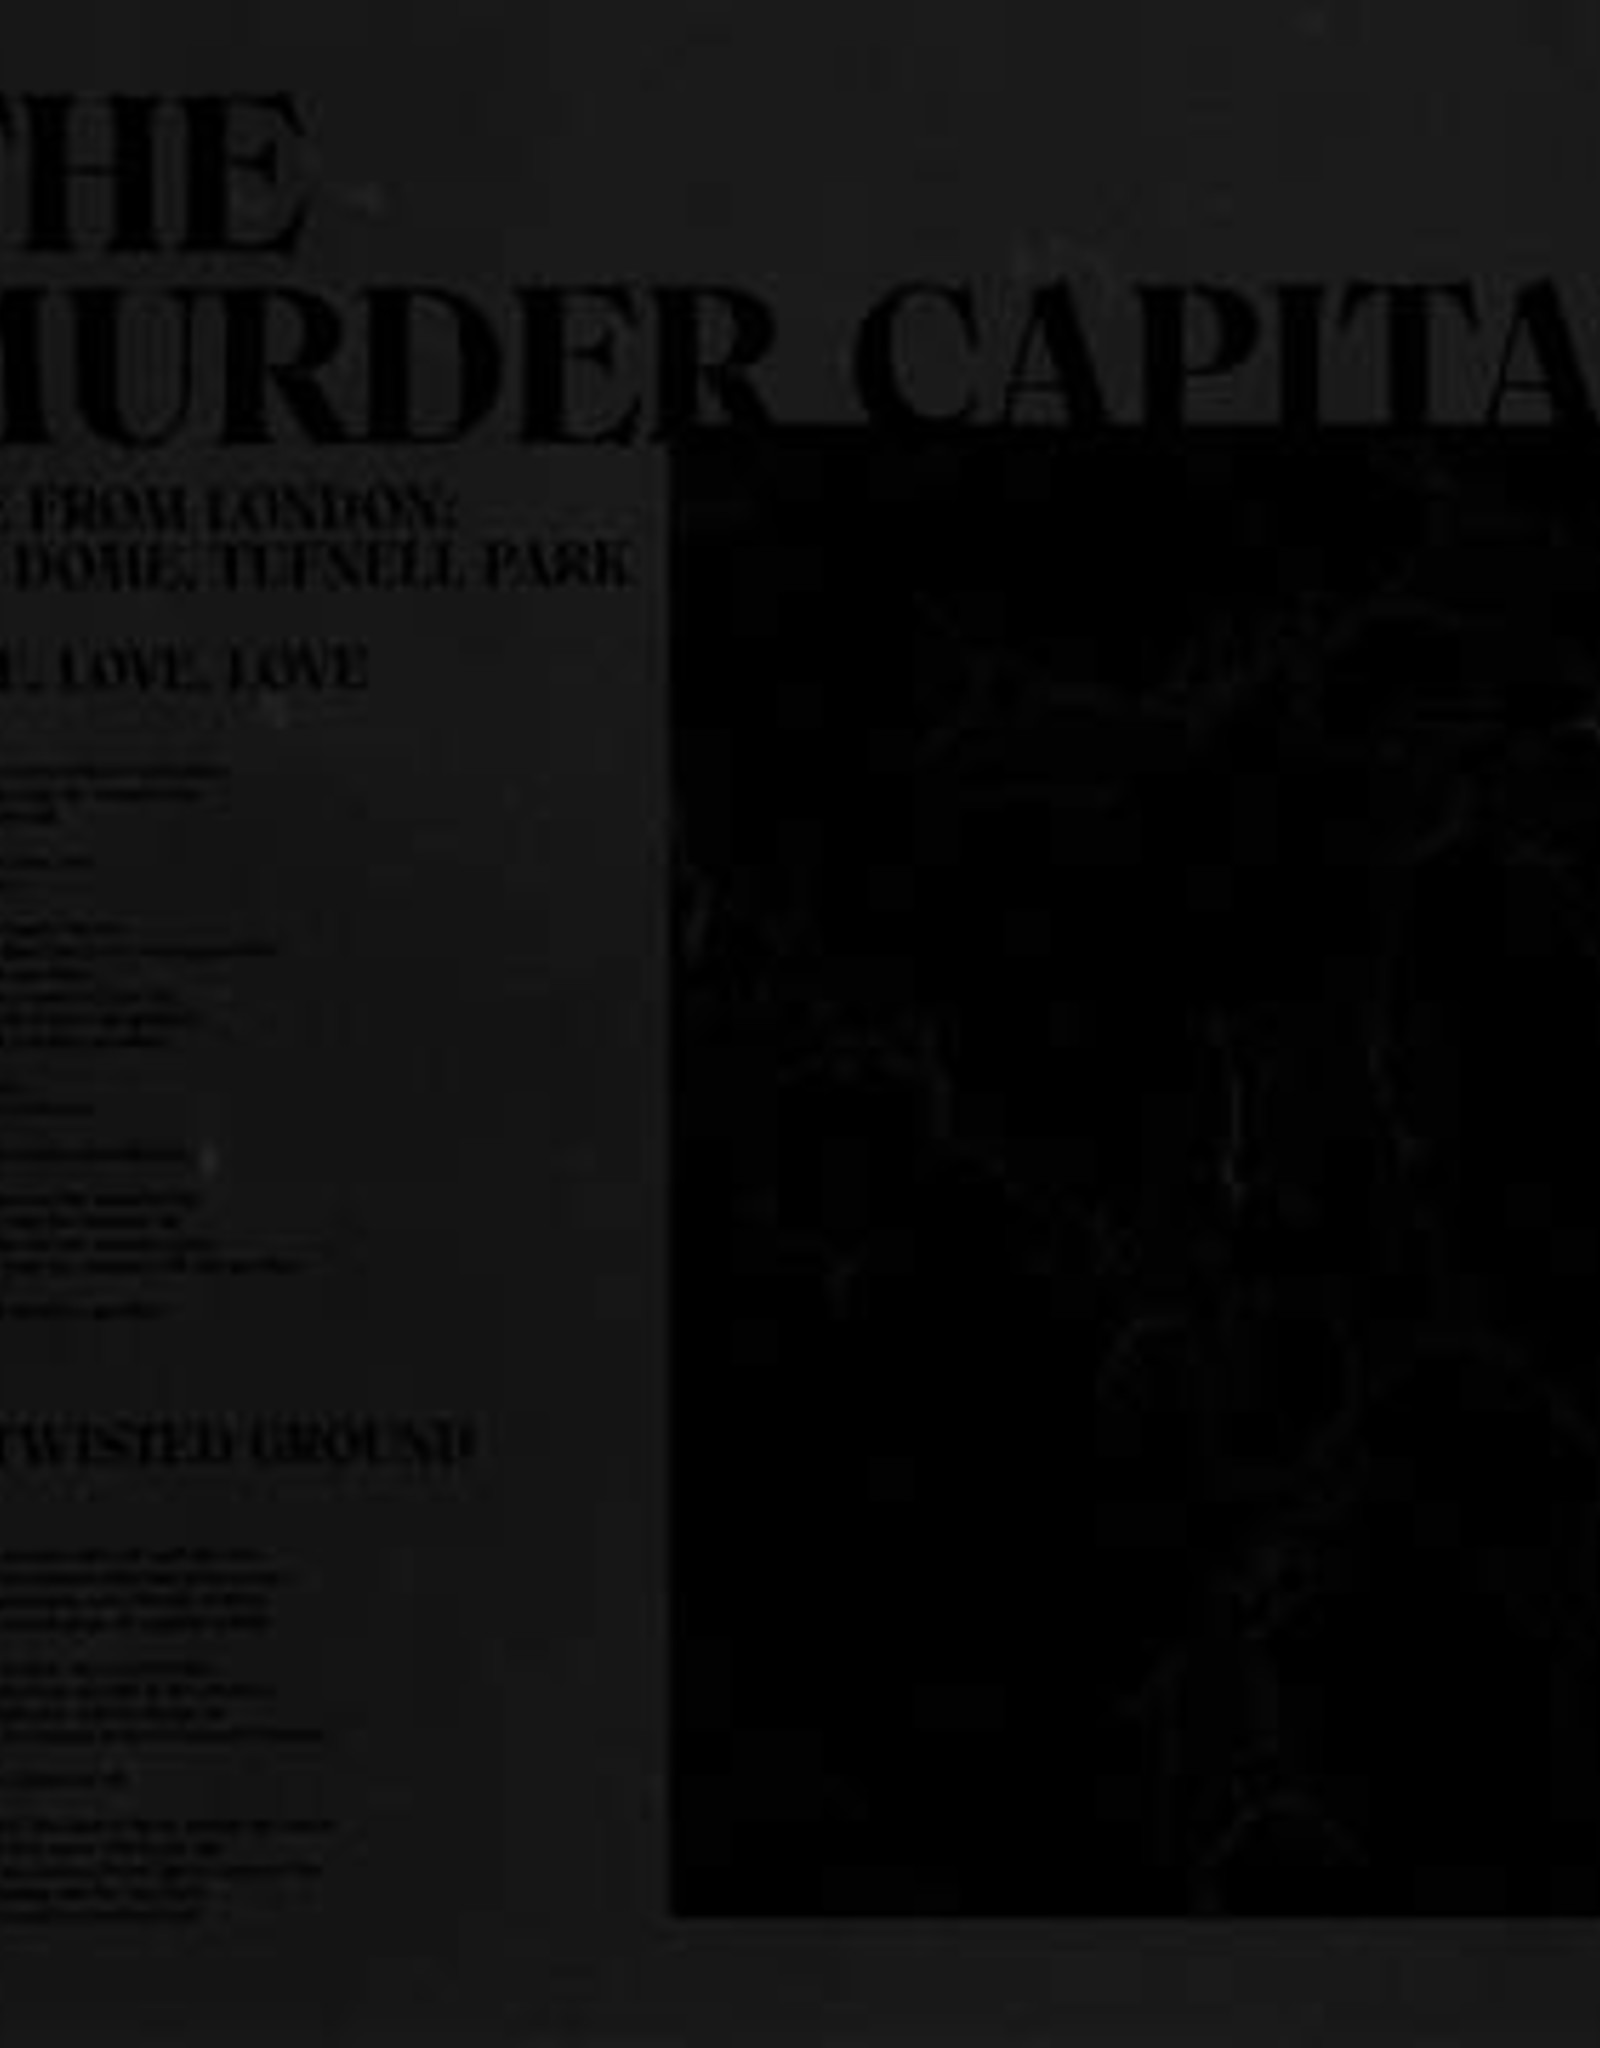 Murder Capital - Live From London: The Dome, Tufnell Park (RSD 2020)